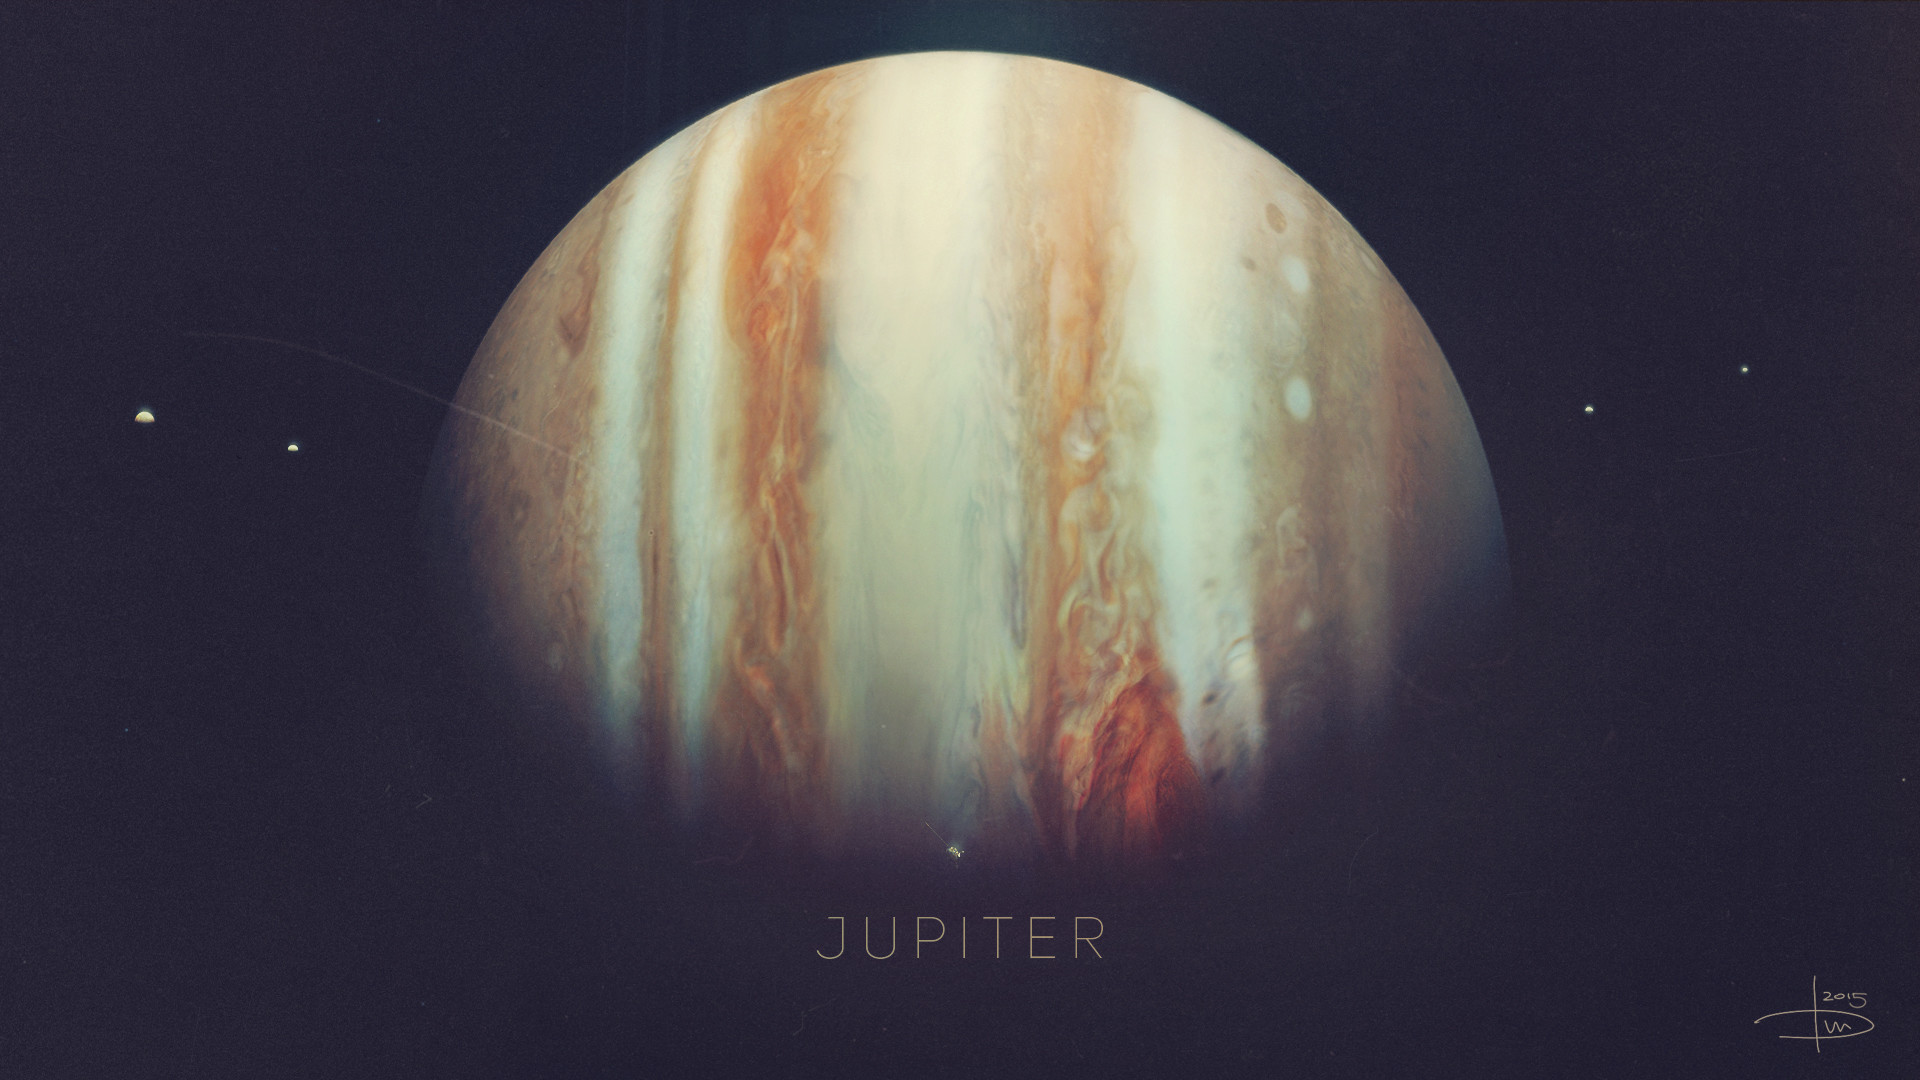 dmitry-bogoljubov-jupiter